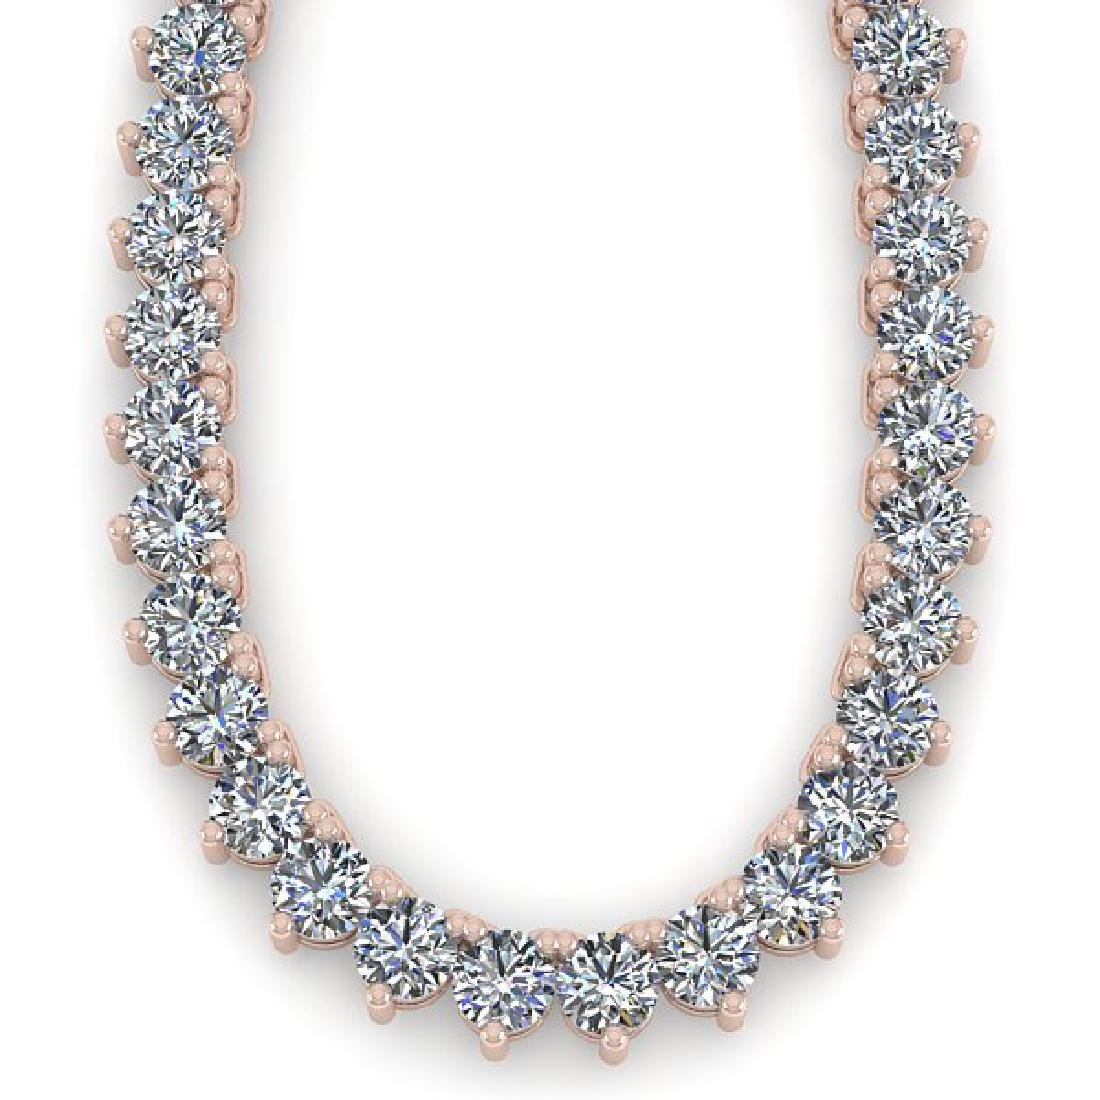 45 CTW Solitaire SI Diamond Necklace 18K Rose Gold - 2